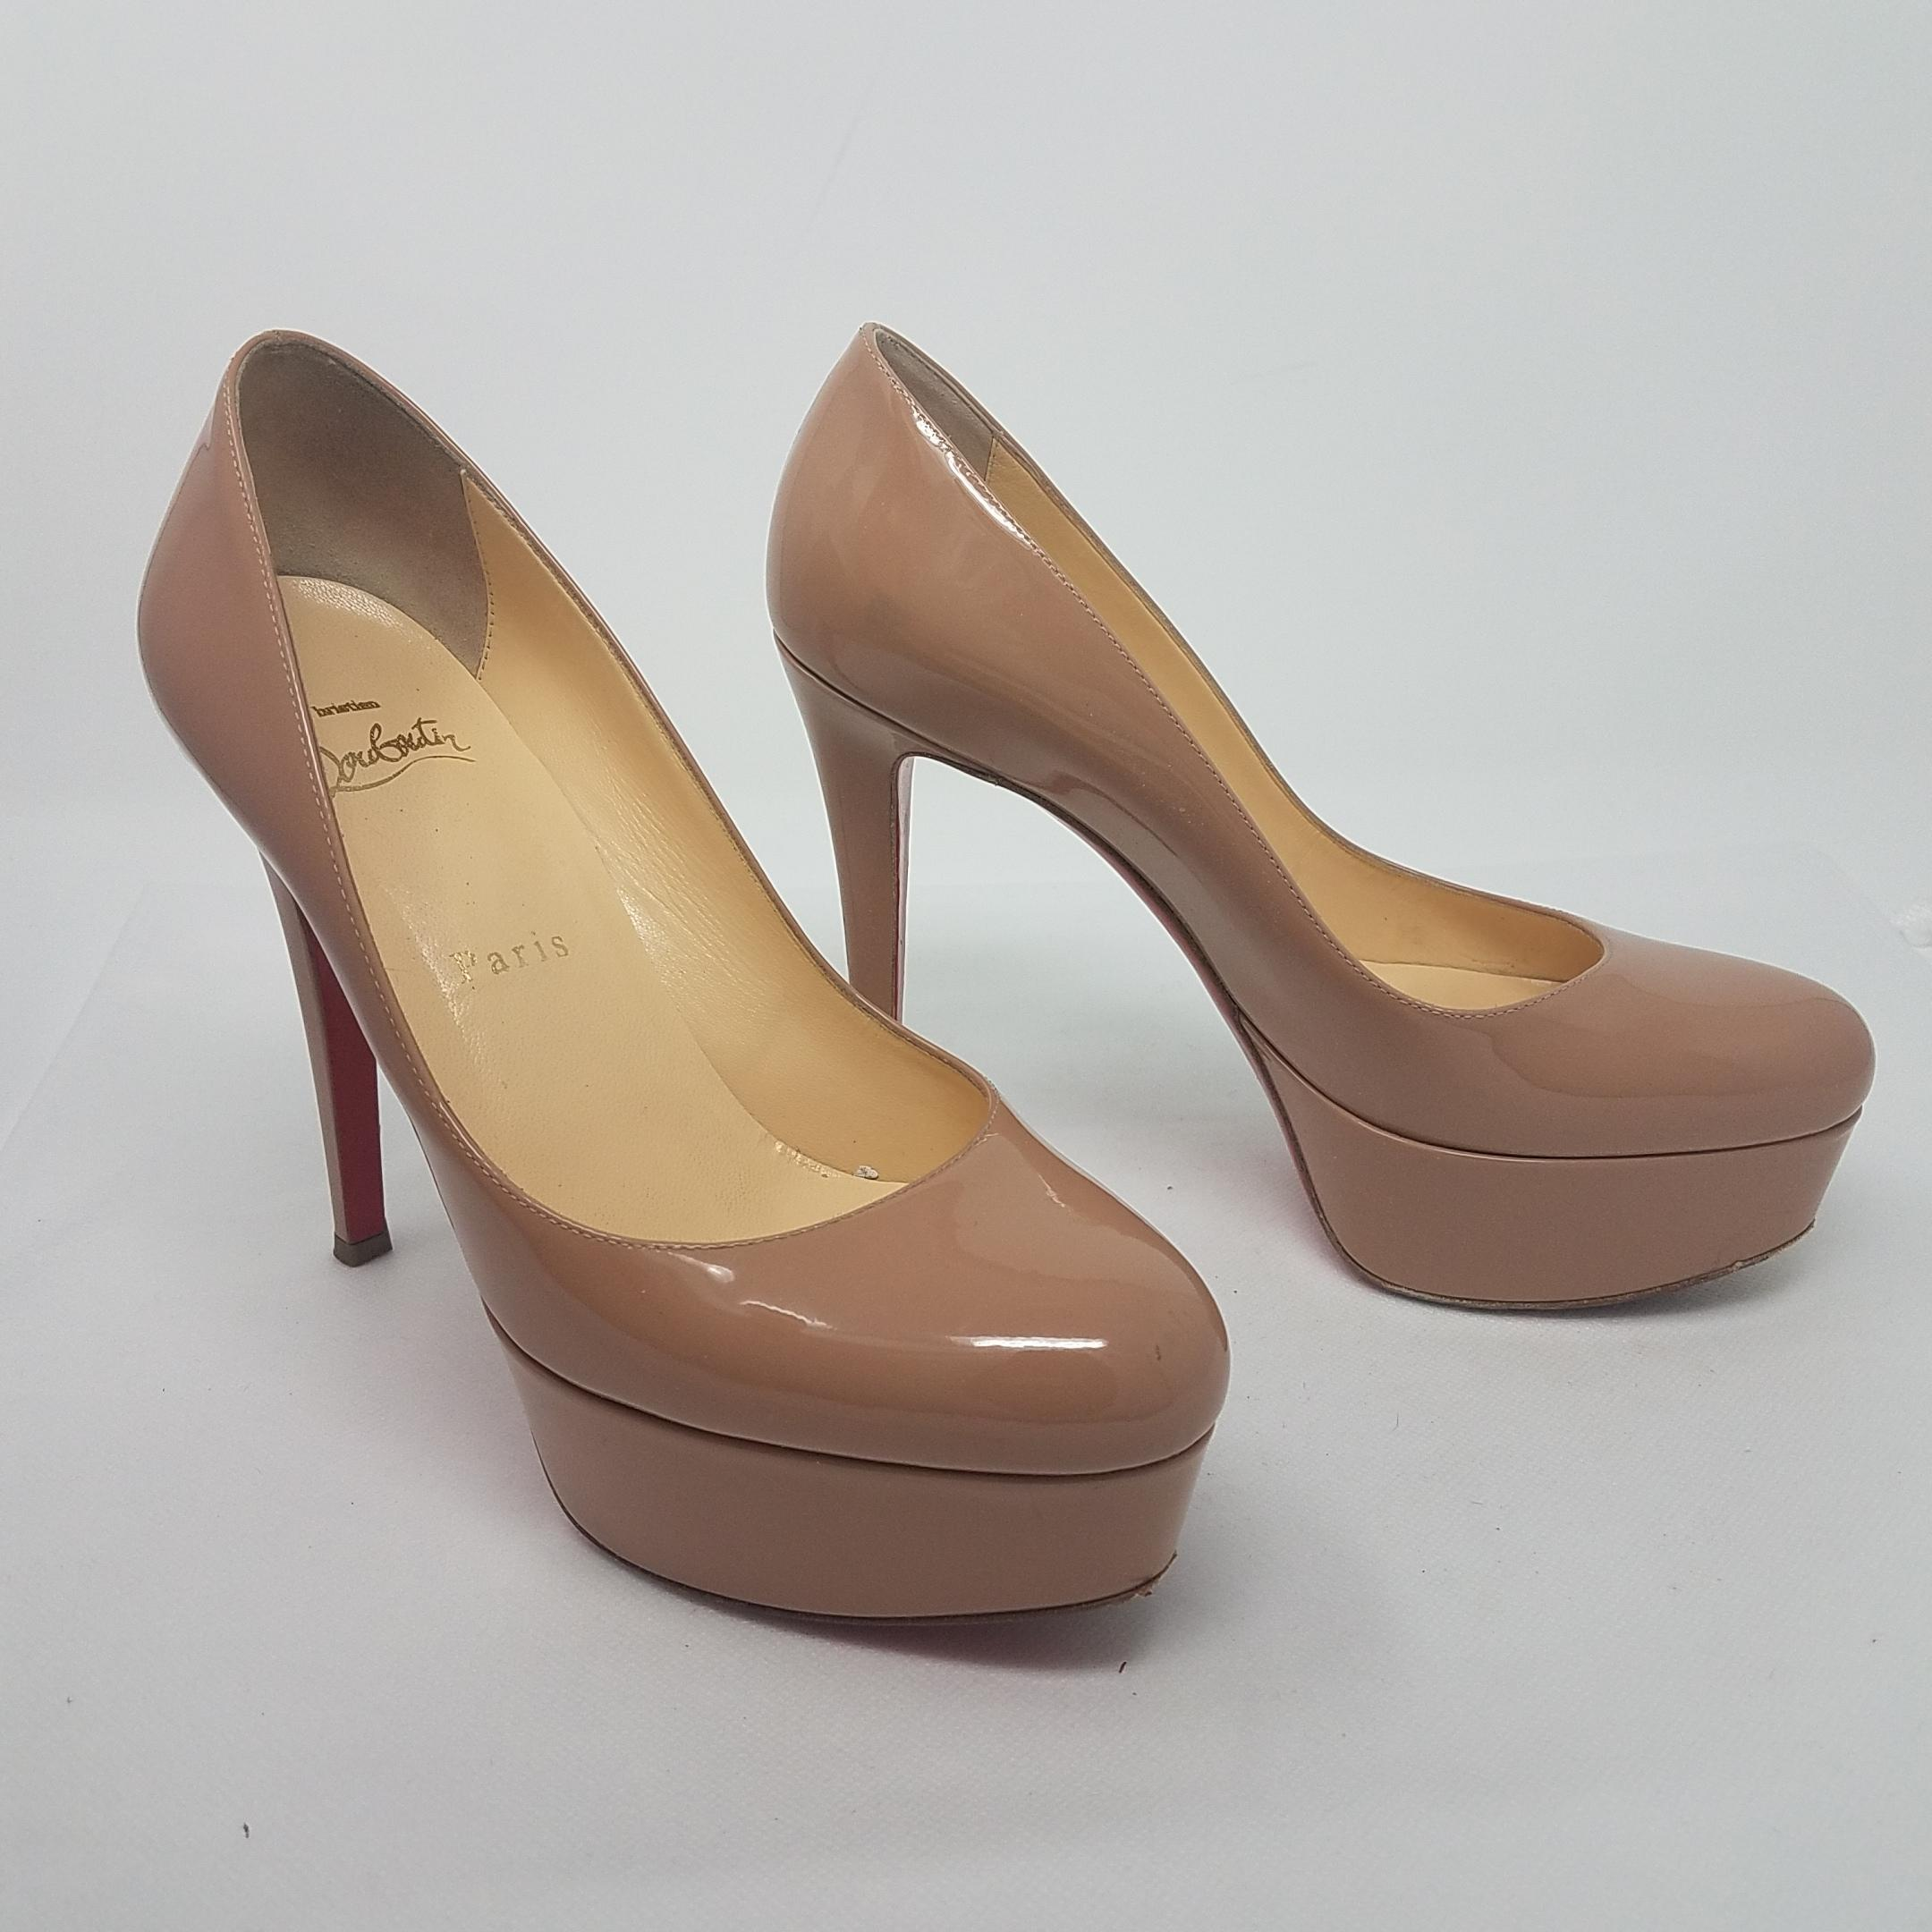 4705f4427bca ... Christian Louboutin Beige Tan Patent Patent Patent Leather Bianca 120  Pumps Size EU 36.5 (Approx ...